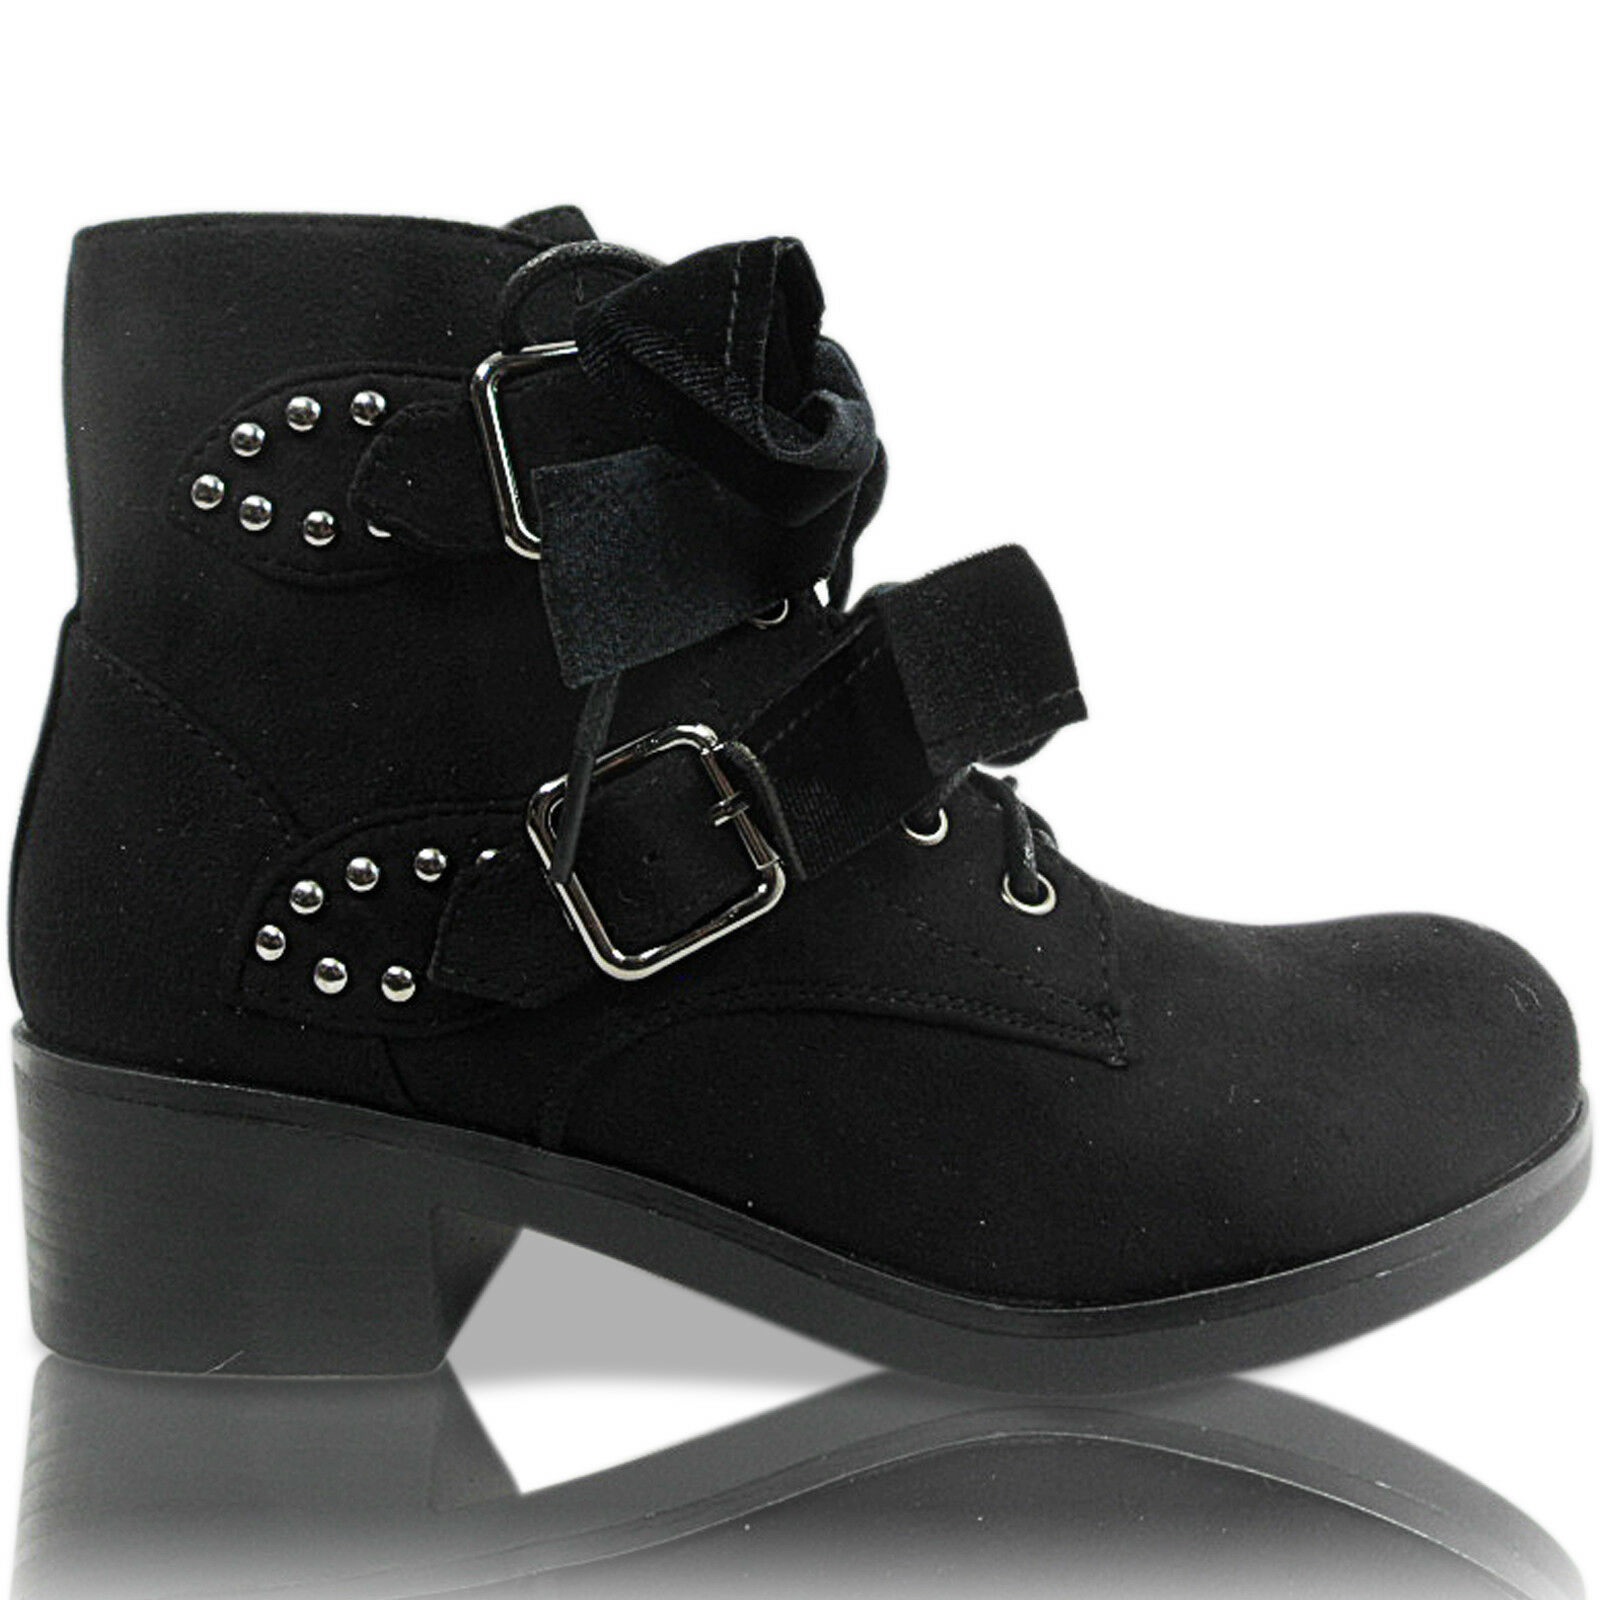 WOMENS LADIES LOW HEEL BIKER CHELSEA COMBAT GOTH STUD LACE UP ANKLE BOOTS SIZE